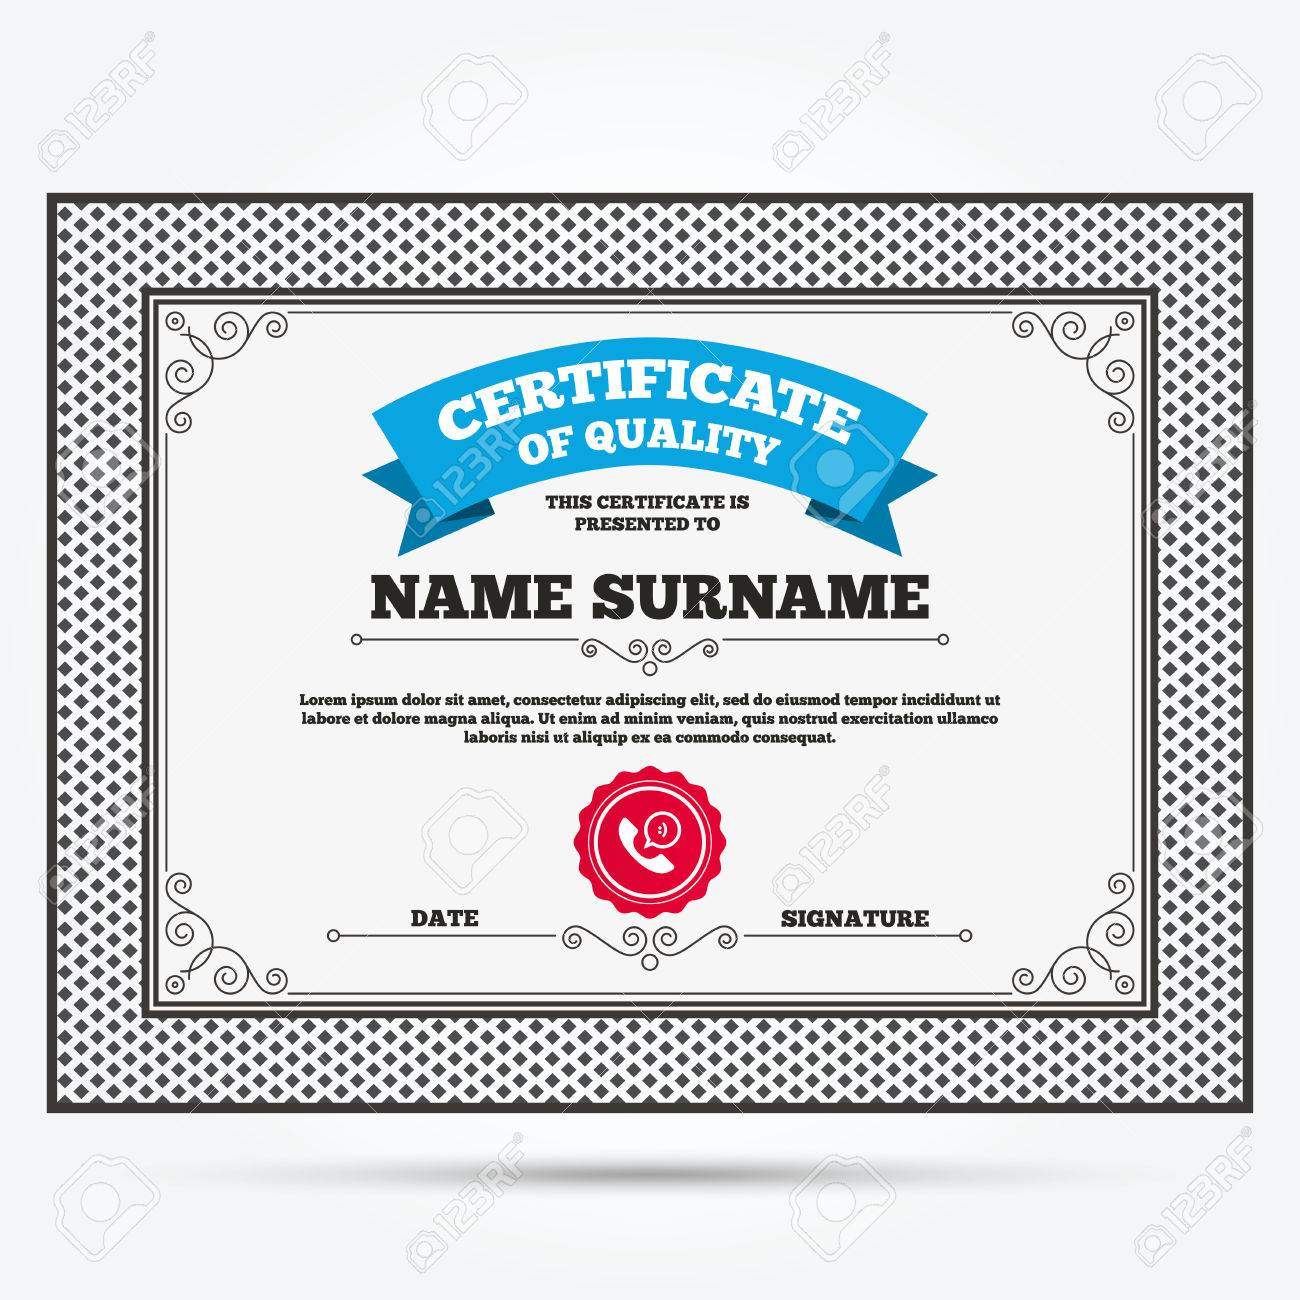 Certificate of quality  Phone sign icon  Support symbol  Call